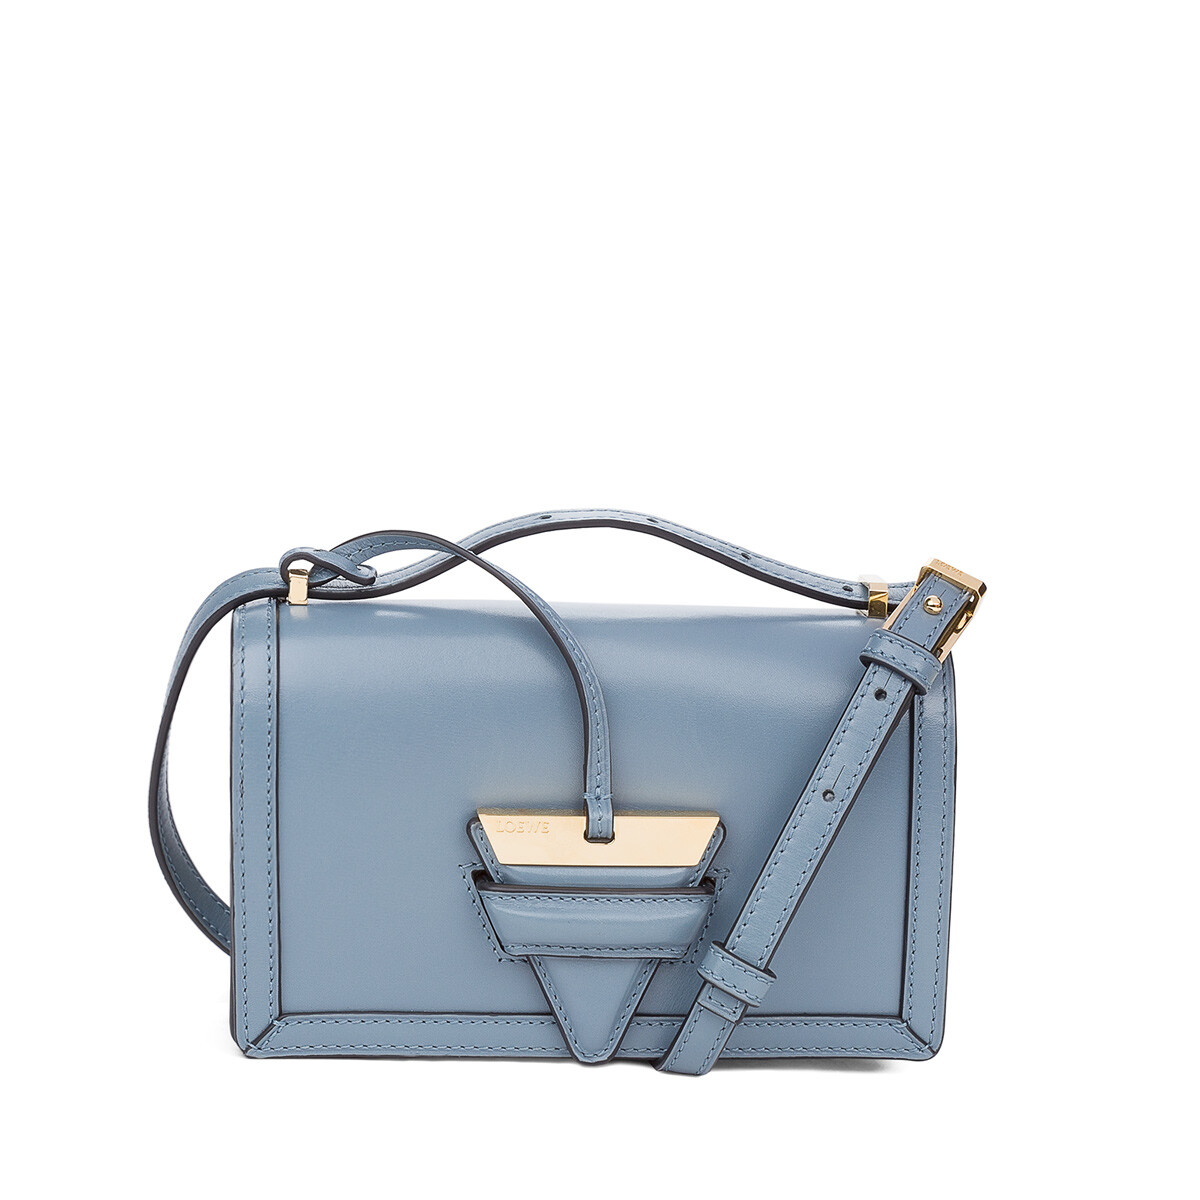 LOEWE Barcelona Small Bag Stone Blue front